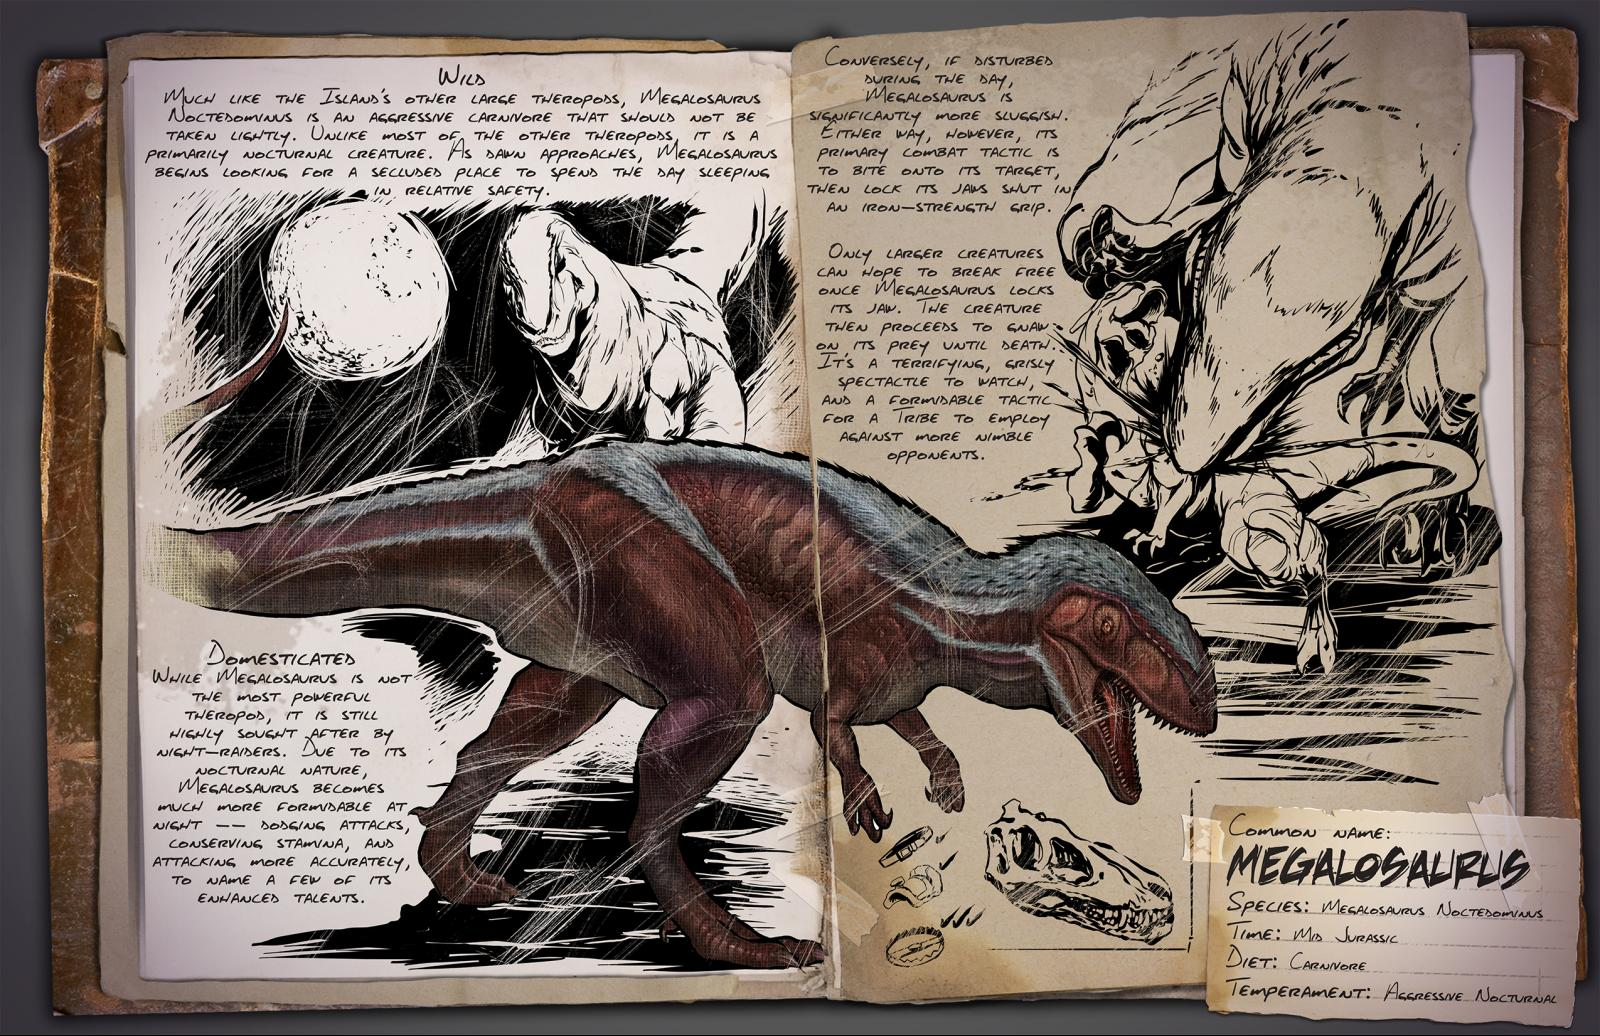 ARK: Survival Evolved - All About Megalosaurus (The Night